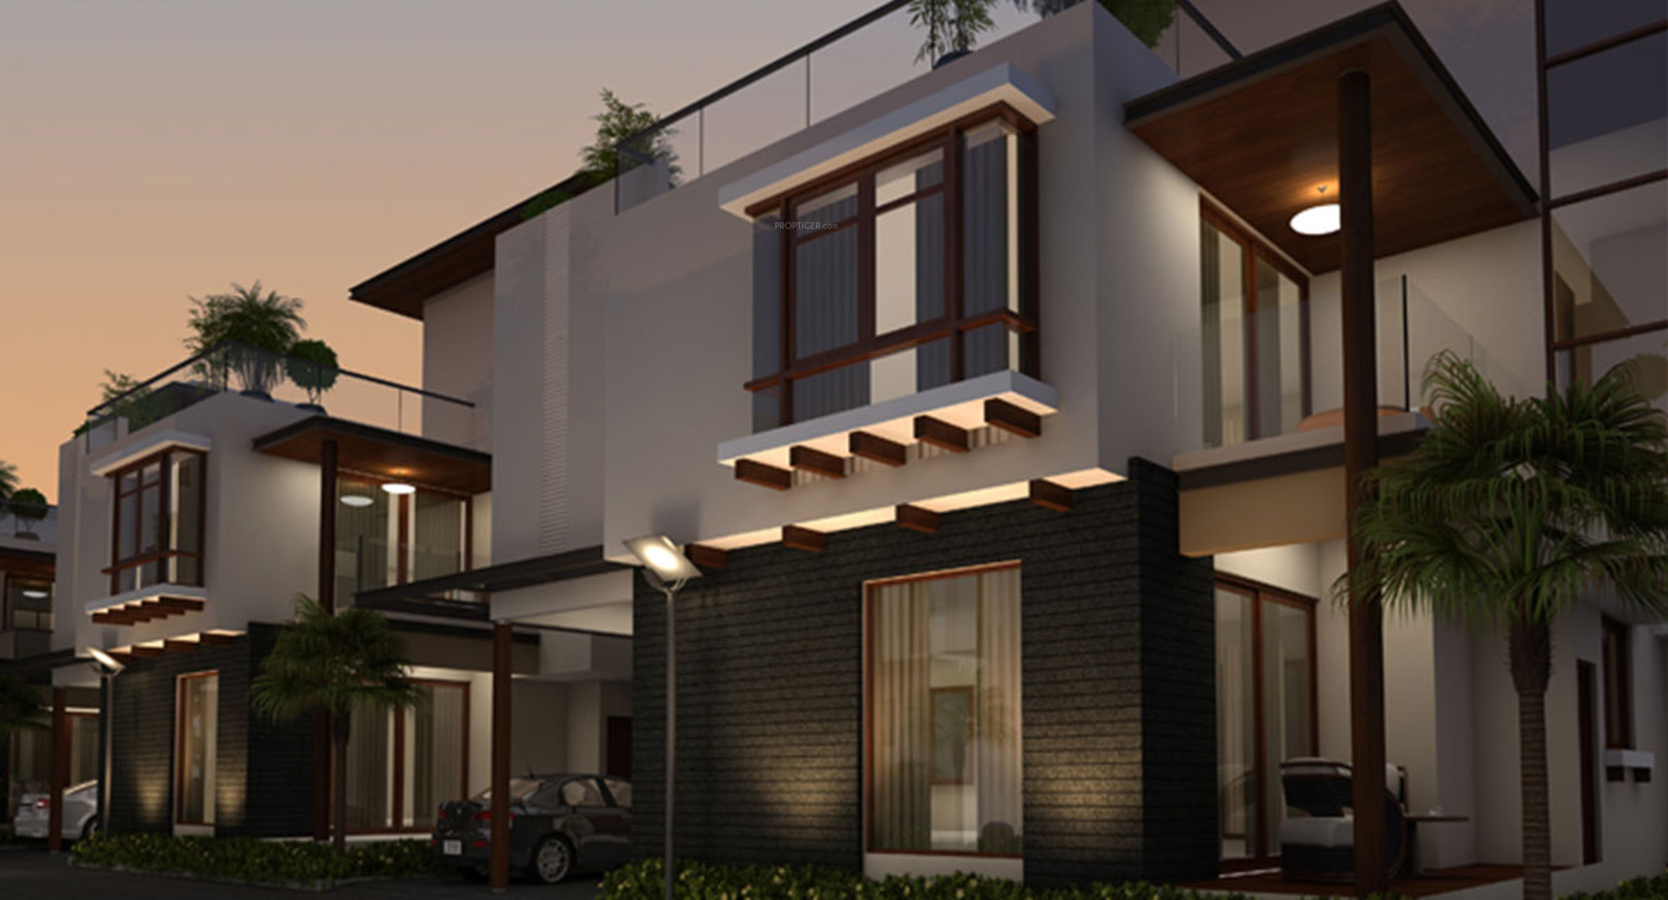 3300 sq ft 4 bhk 5t villa for sale in voora villa 96 for 4 bhk villa interior design